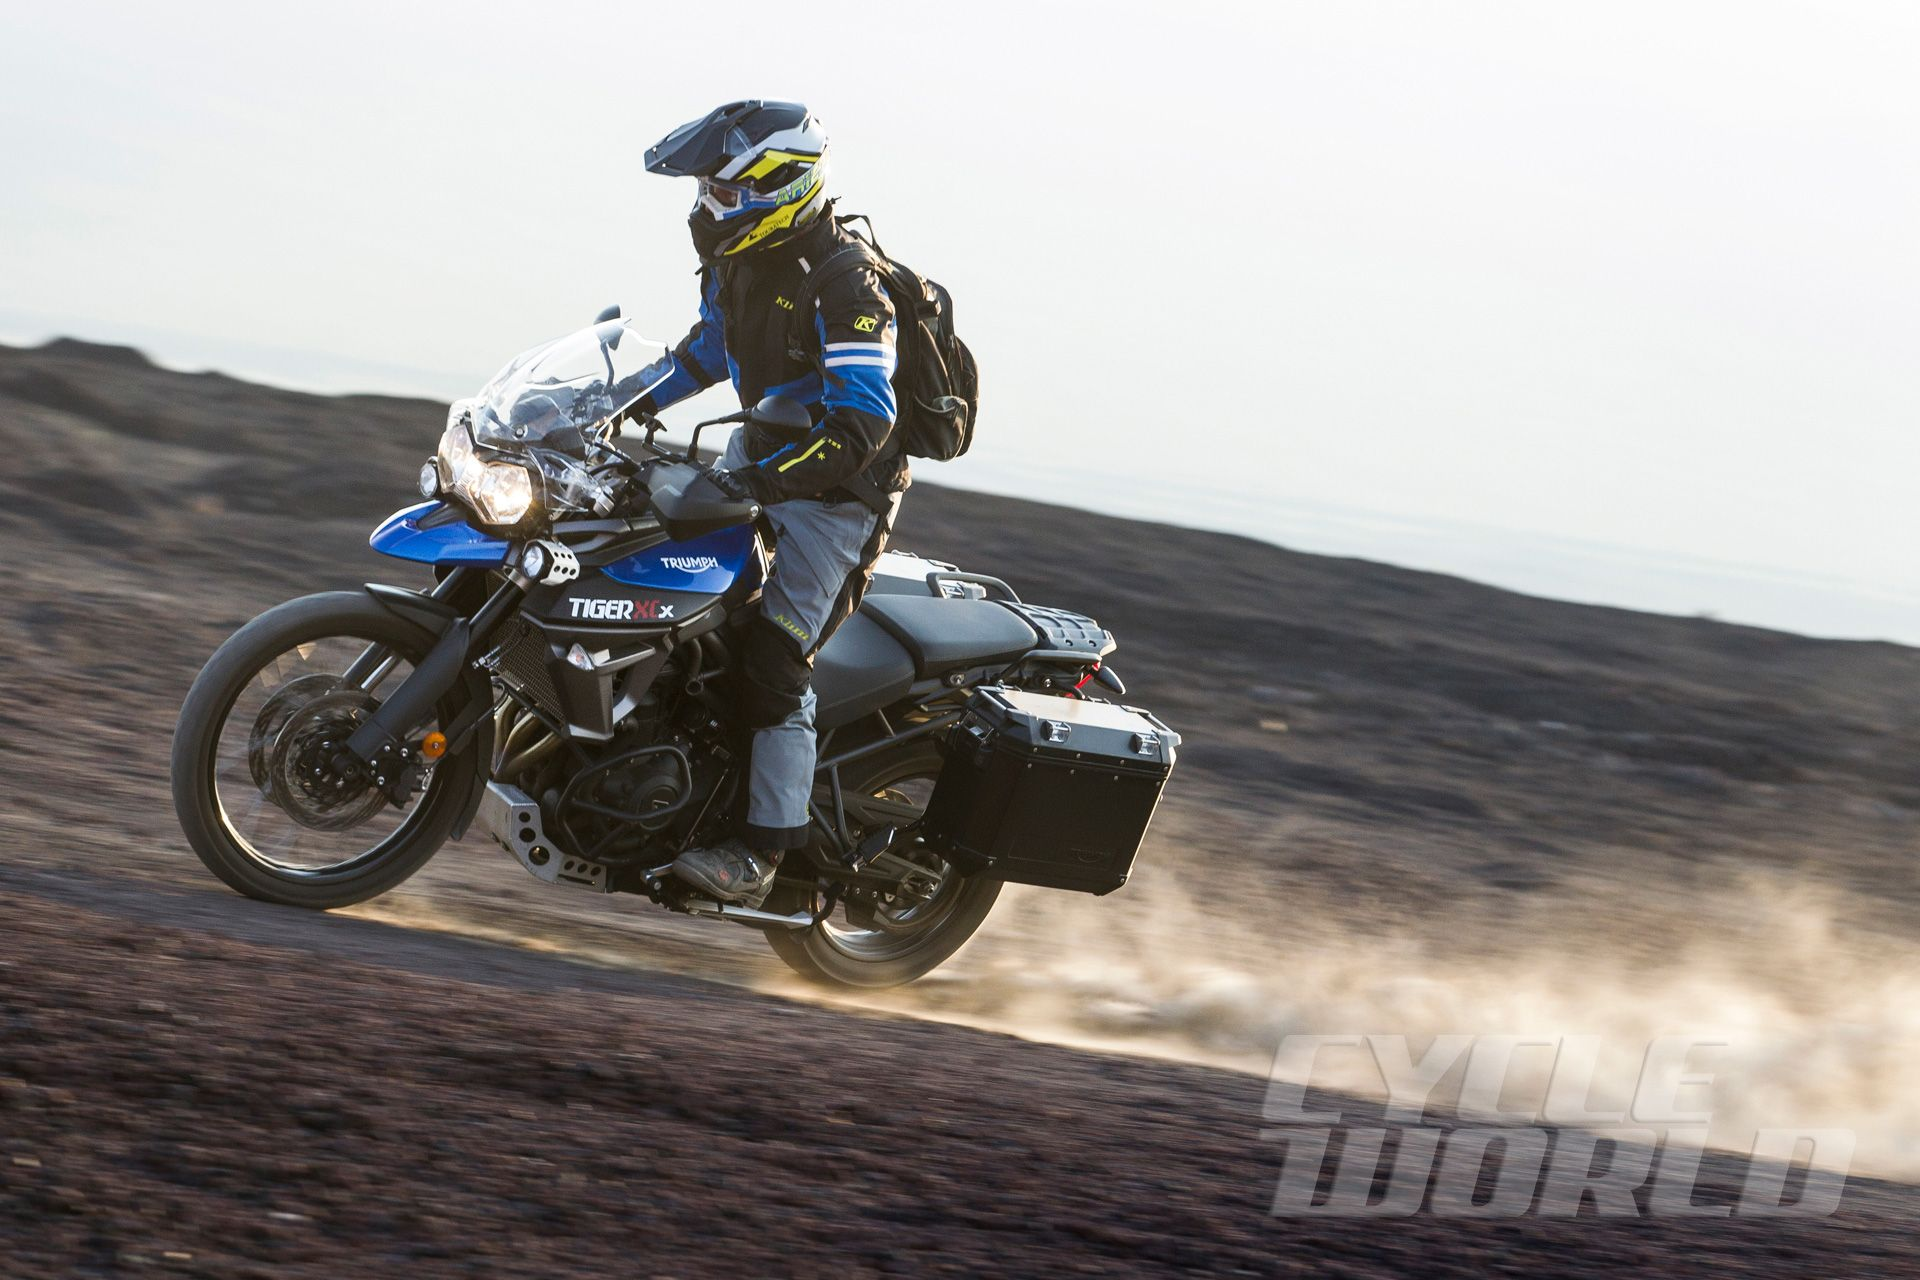 2015 Triumph Tiger 800 XCx action.